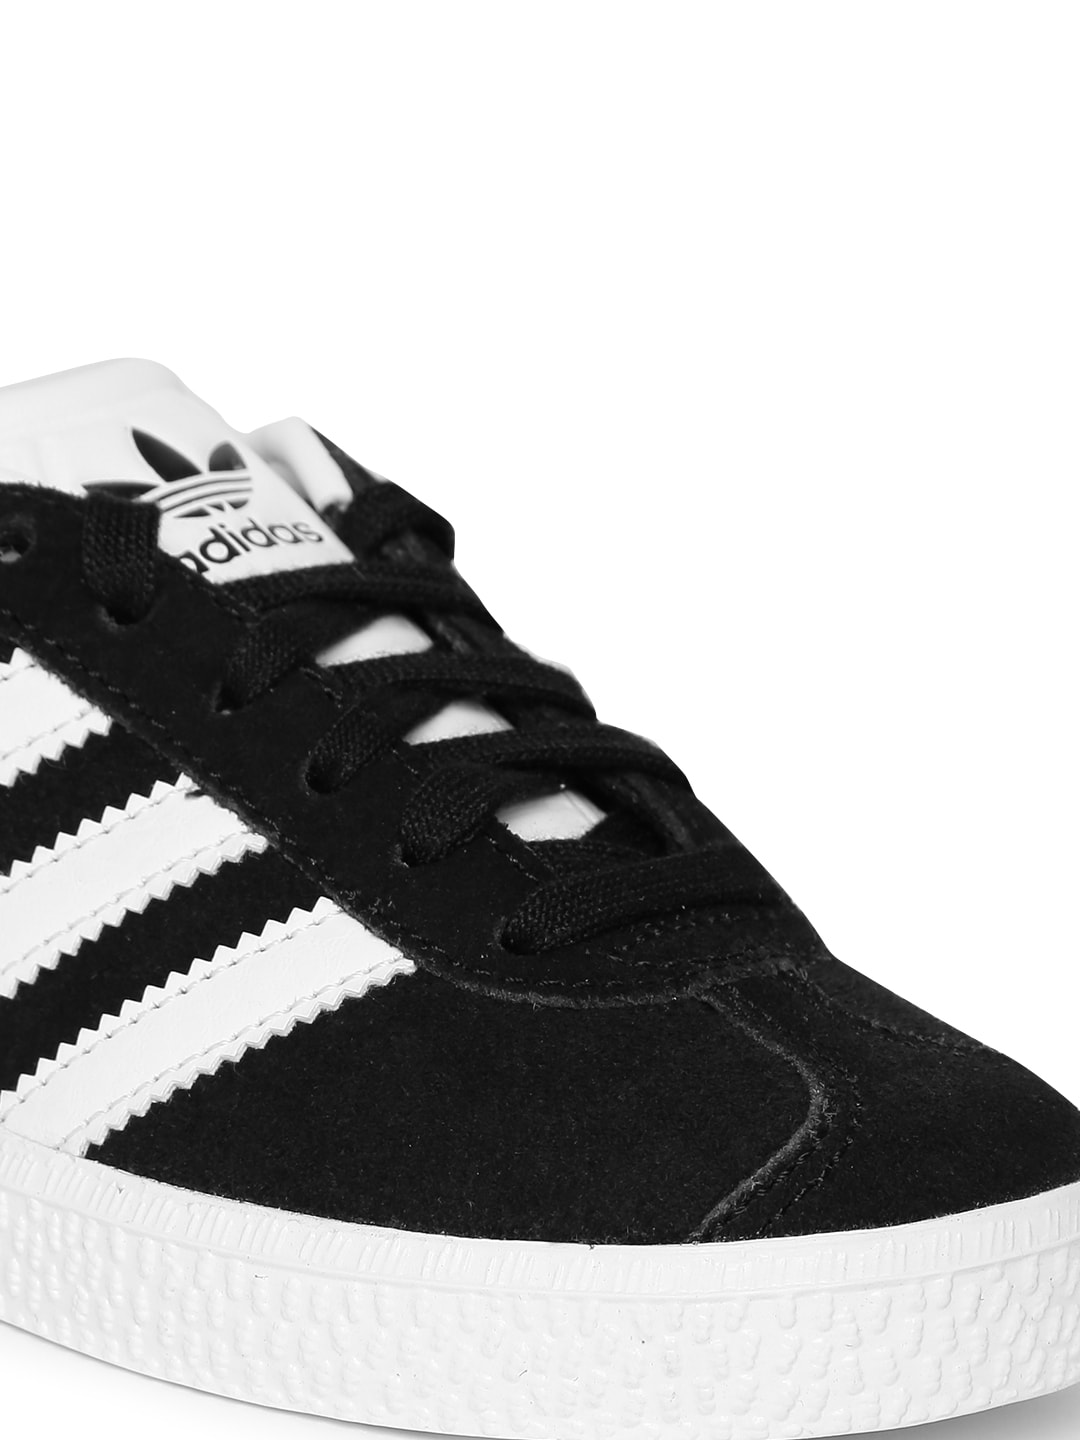 adidas shoes for girls black. adidas shoes for girls black